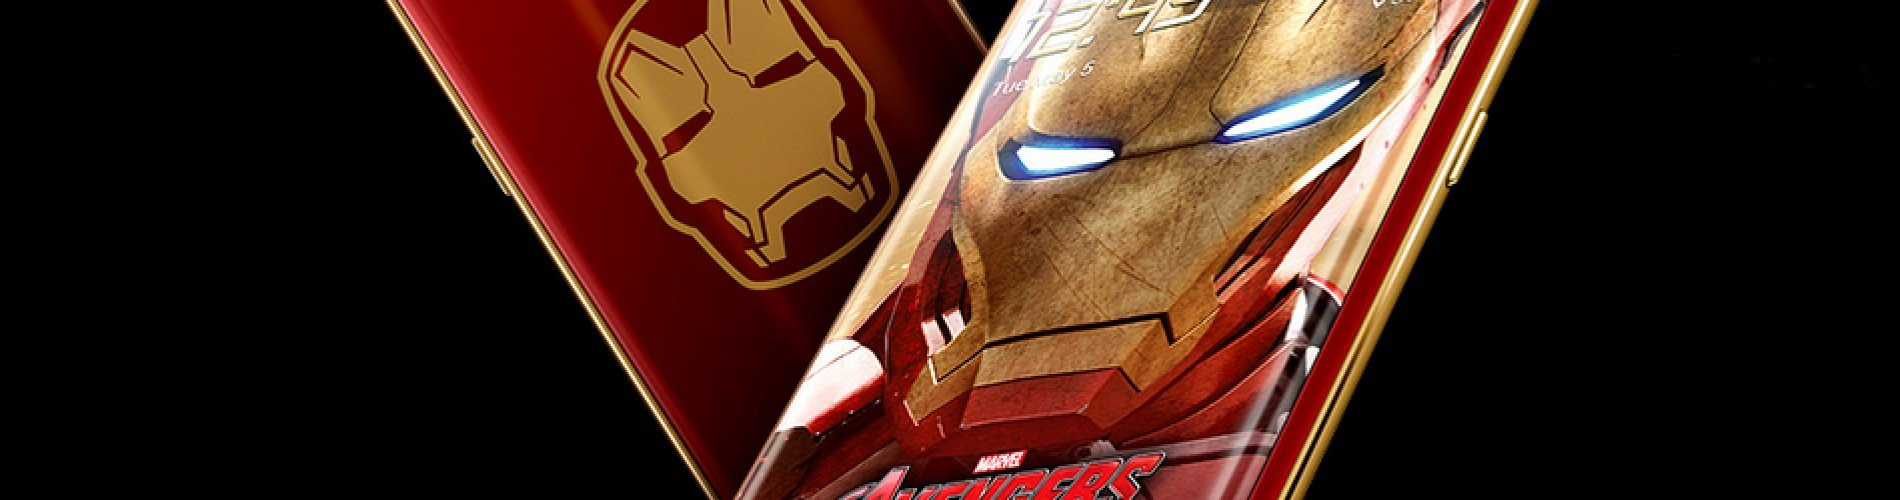 Samsung debuts limited edition Iron Man variant for Galaxy S6 Edge